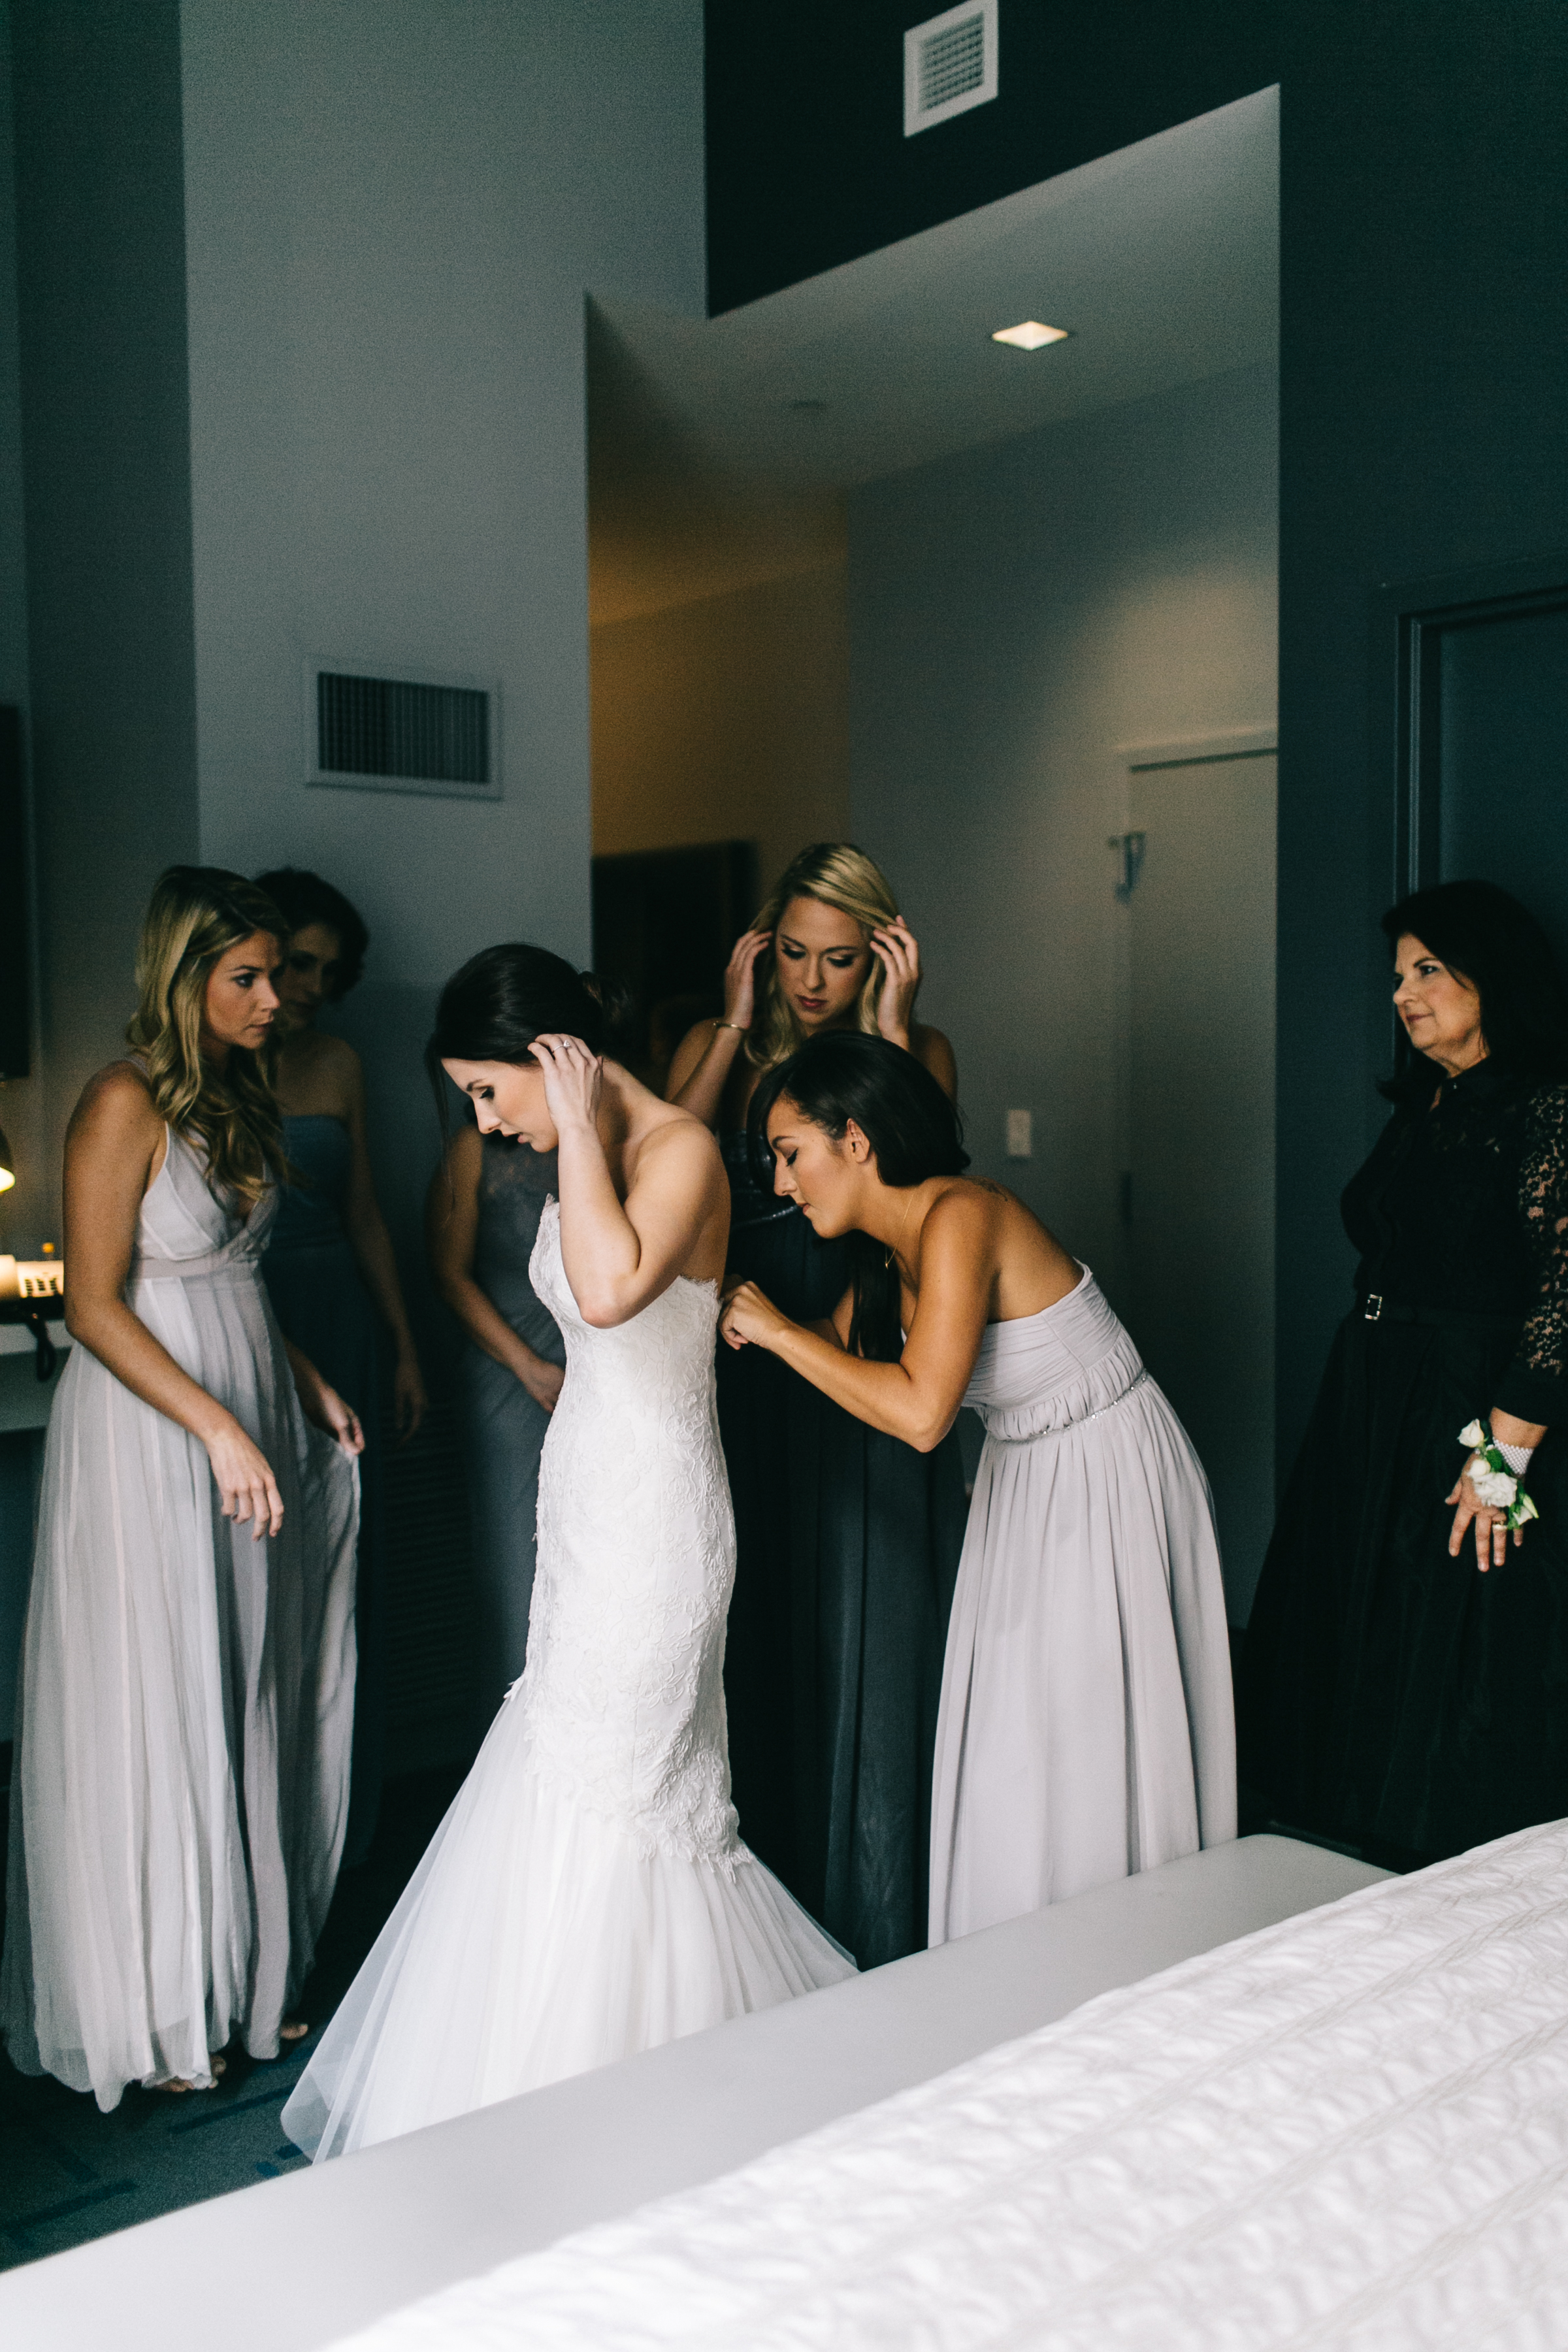 Tampa Industrial wedding at the Rialto Theater_022.jpg